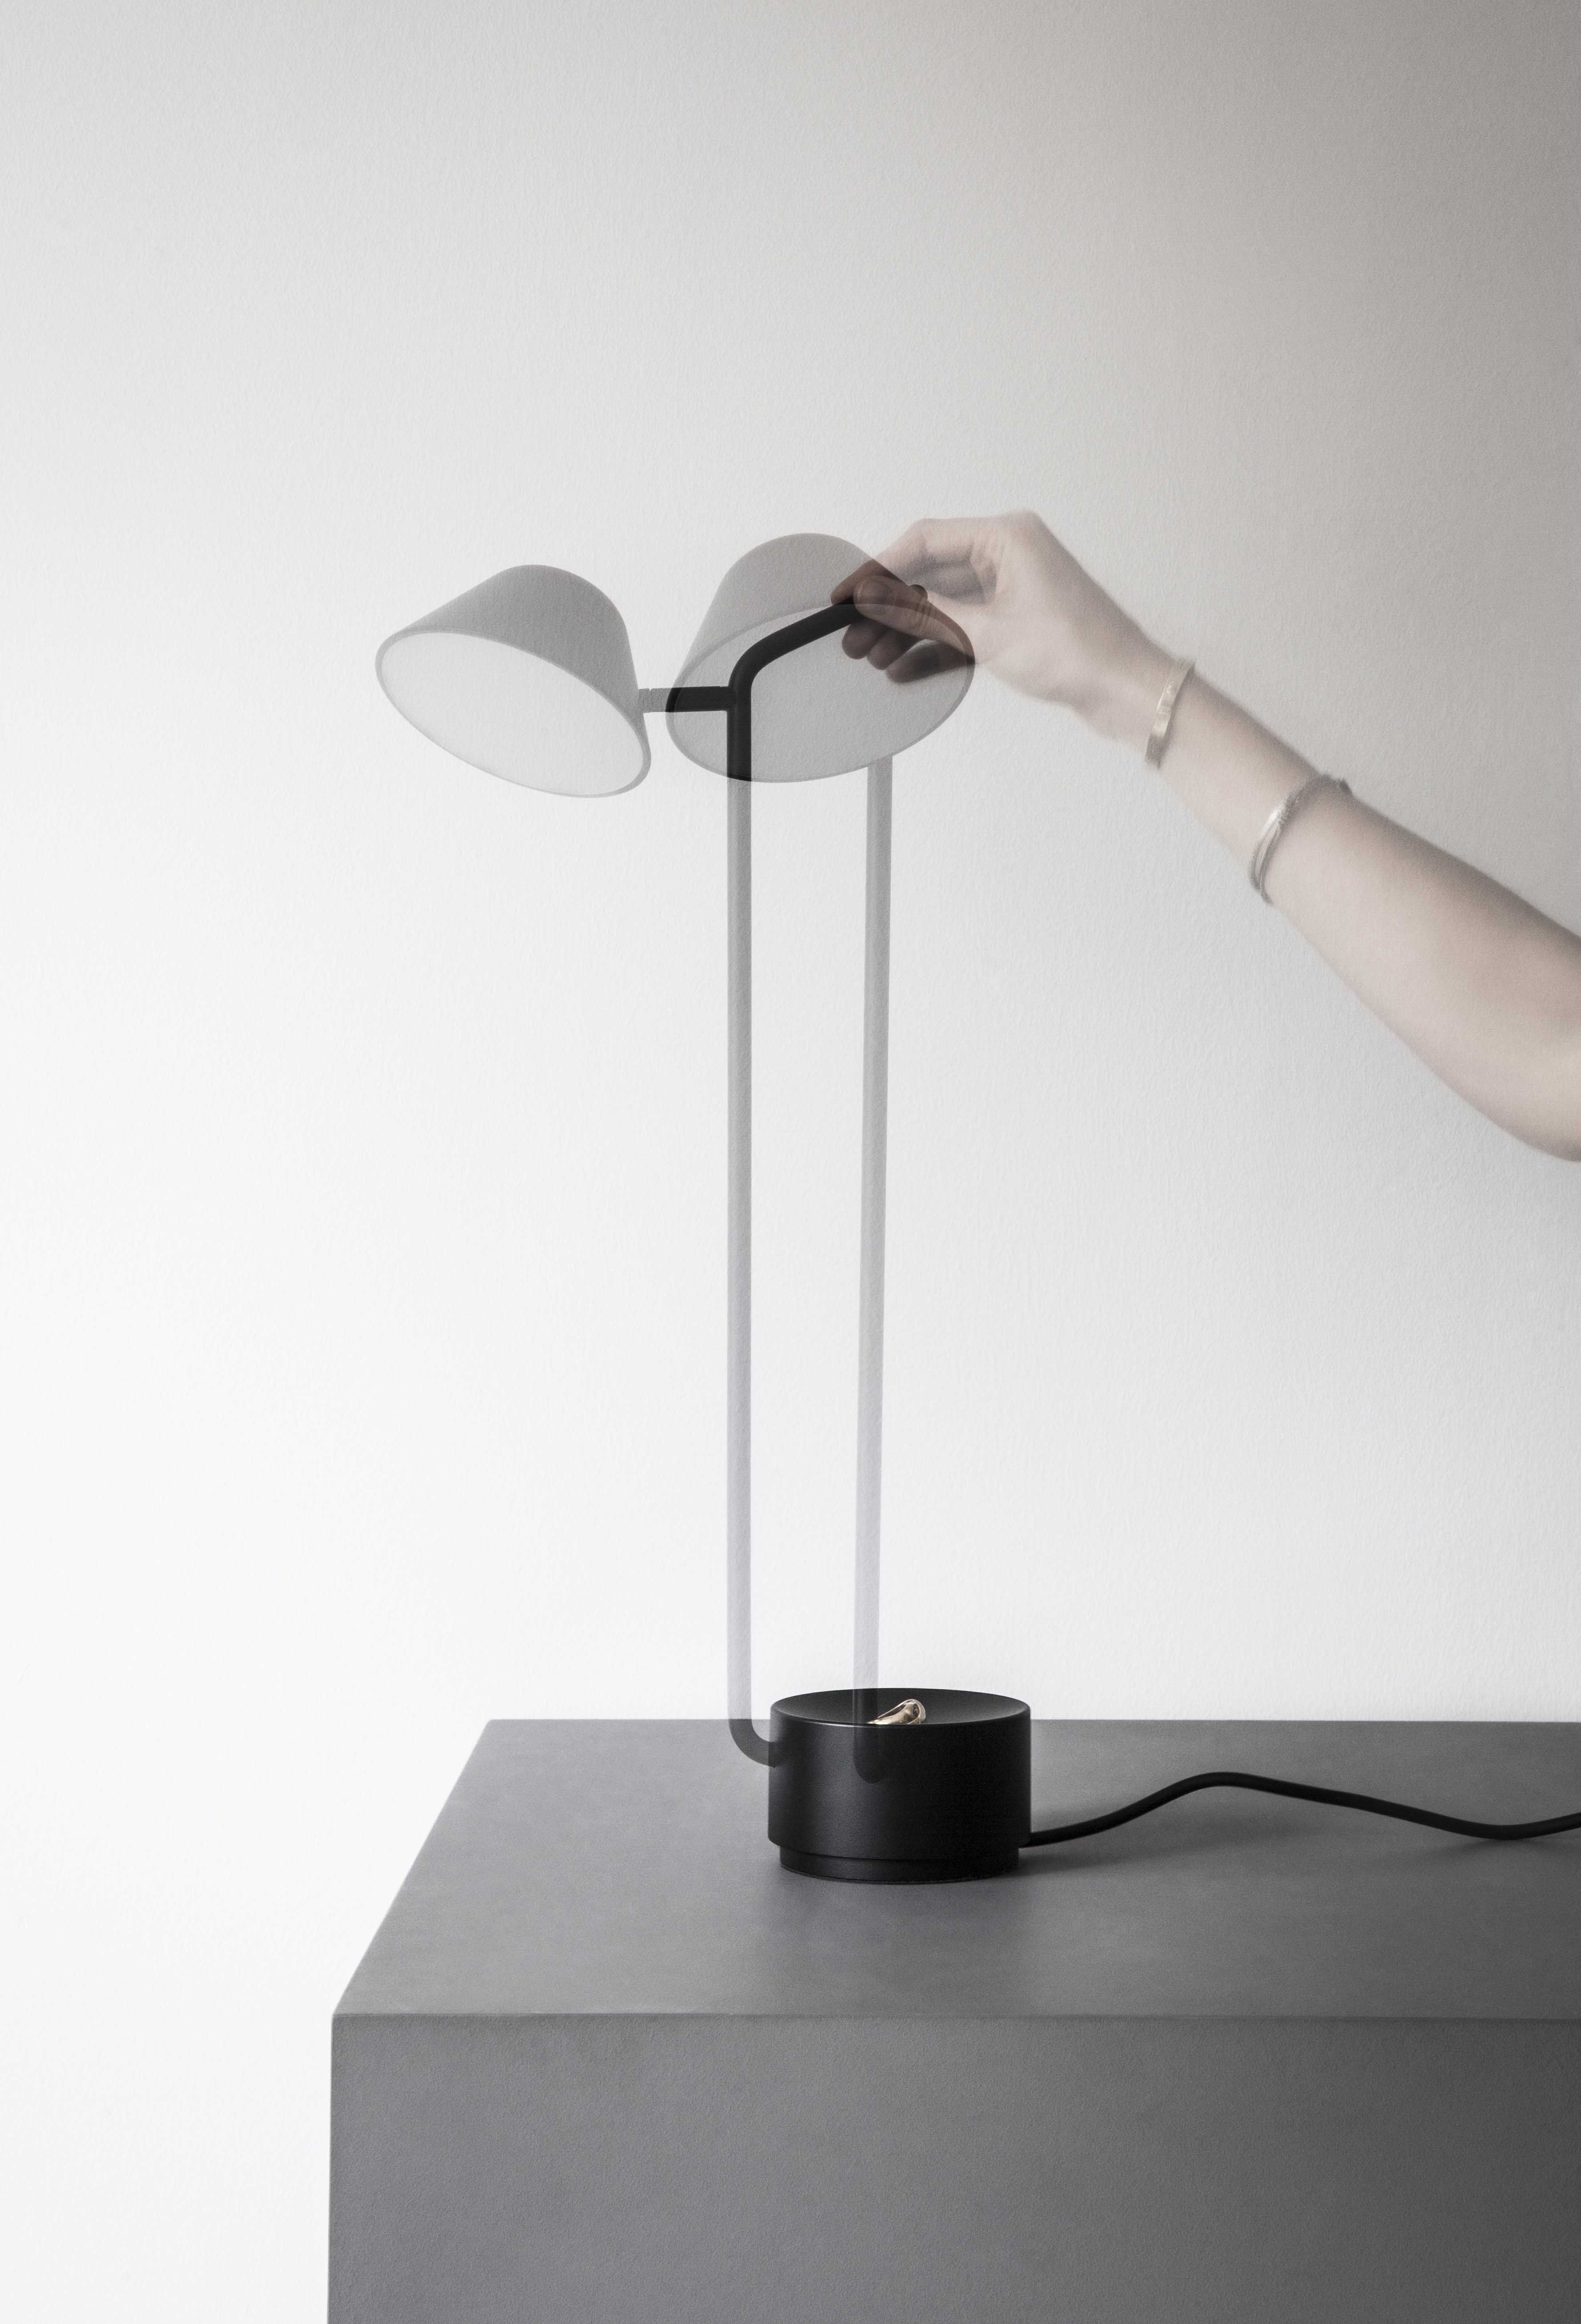 High Quality Design With A Distinct Nordic Twist Is The Philosophy Of Menu A Danish Brand That Aspires To Make The World Be Lamp Table Lamp Black Table Lamps